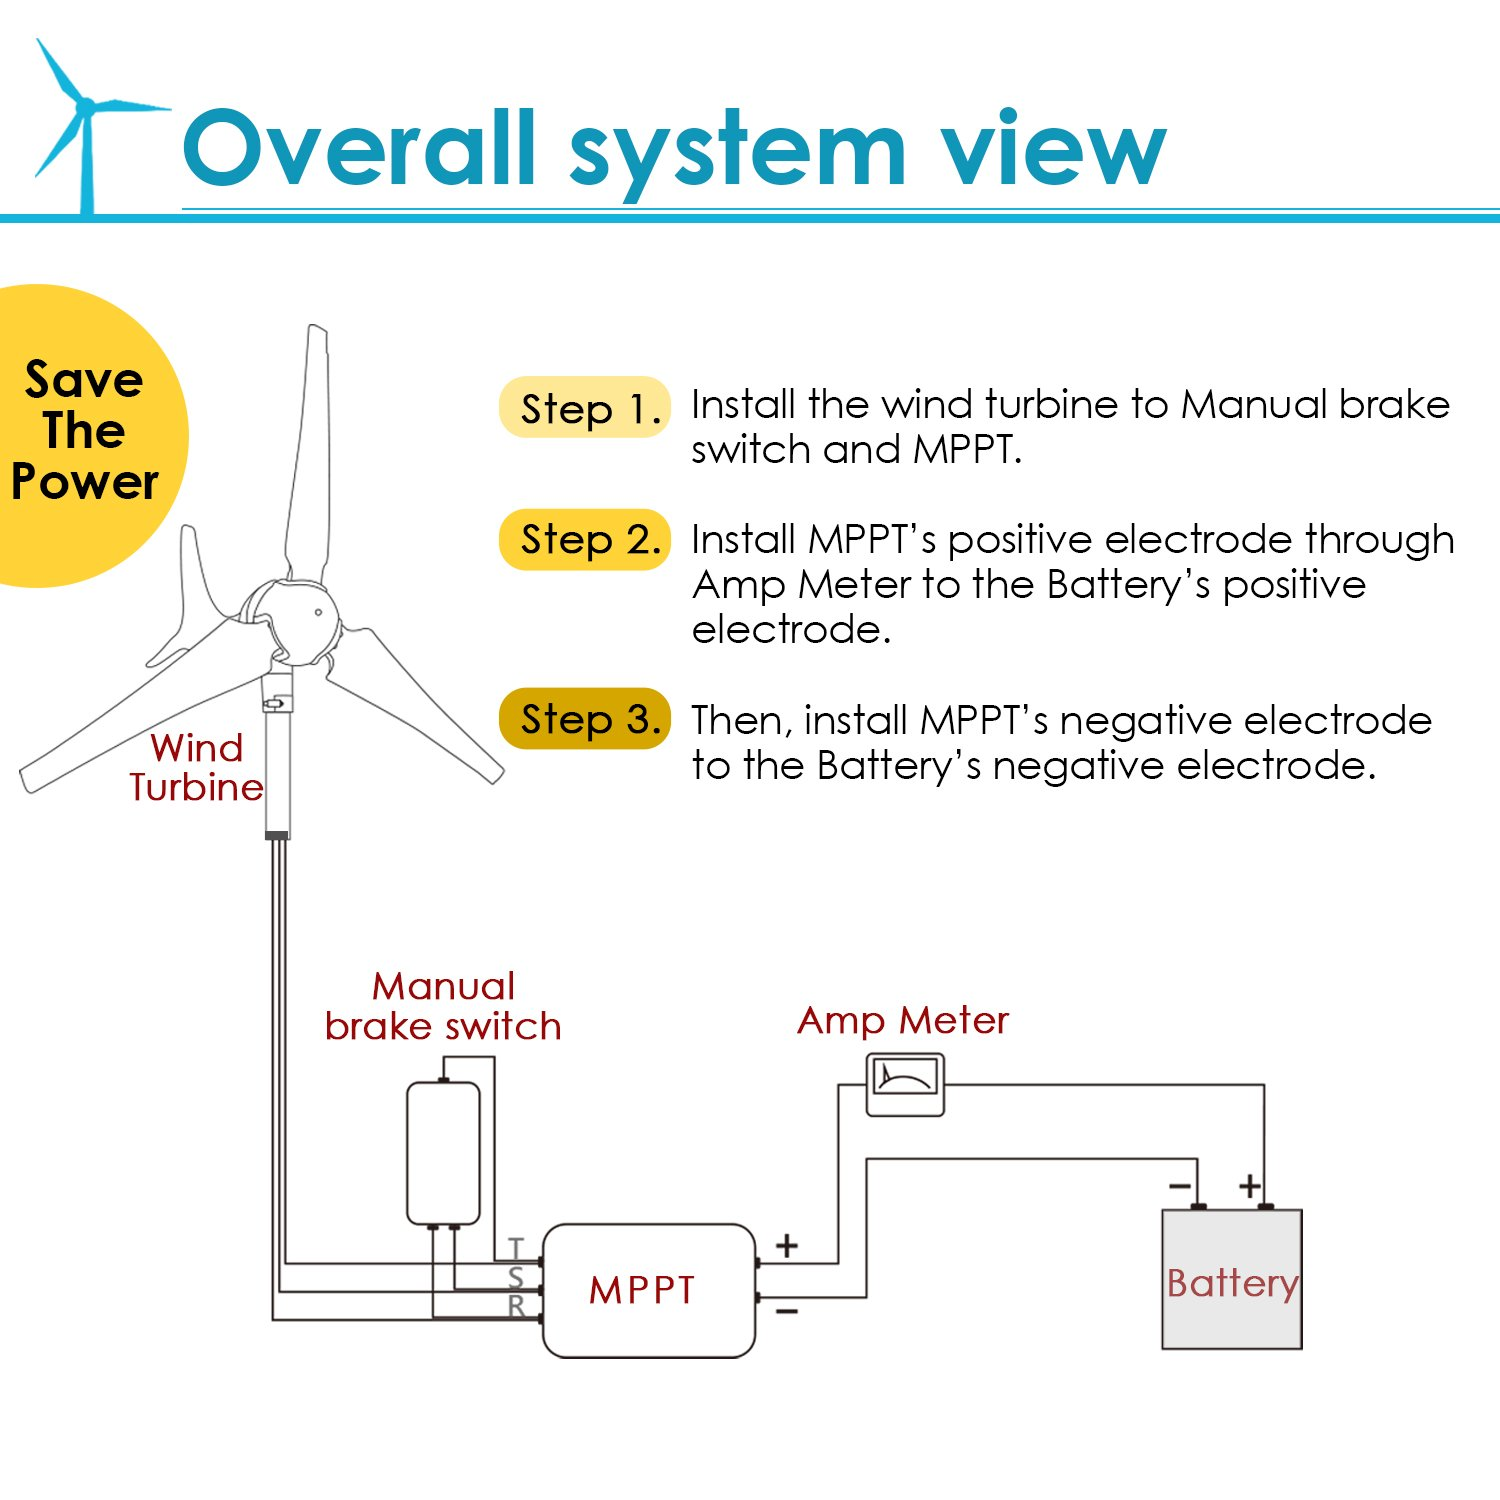 Automaxx Windmill 600w 12v 24v 50a 25a Wind Turbine Electrical Diagram On Dc Electric Generator Schematics Kit Mppt Charge Controller Included Amp Volt Watt Display Automatic And Manual Braking System Diy Installation